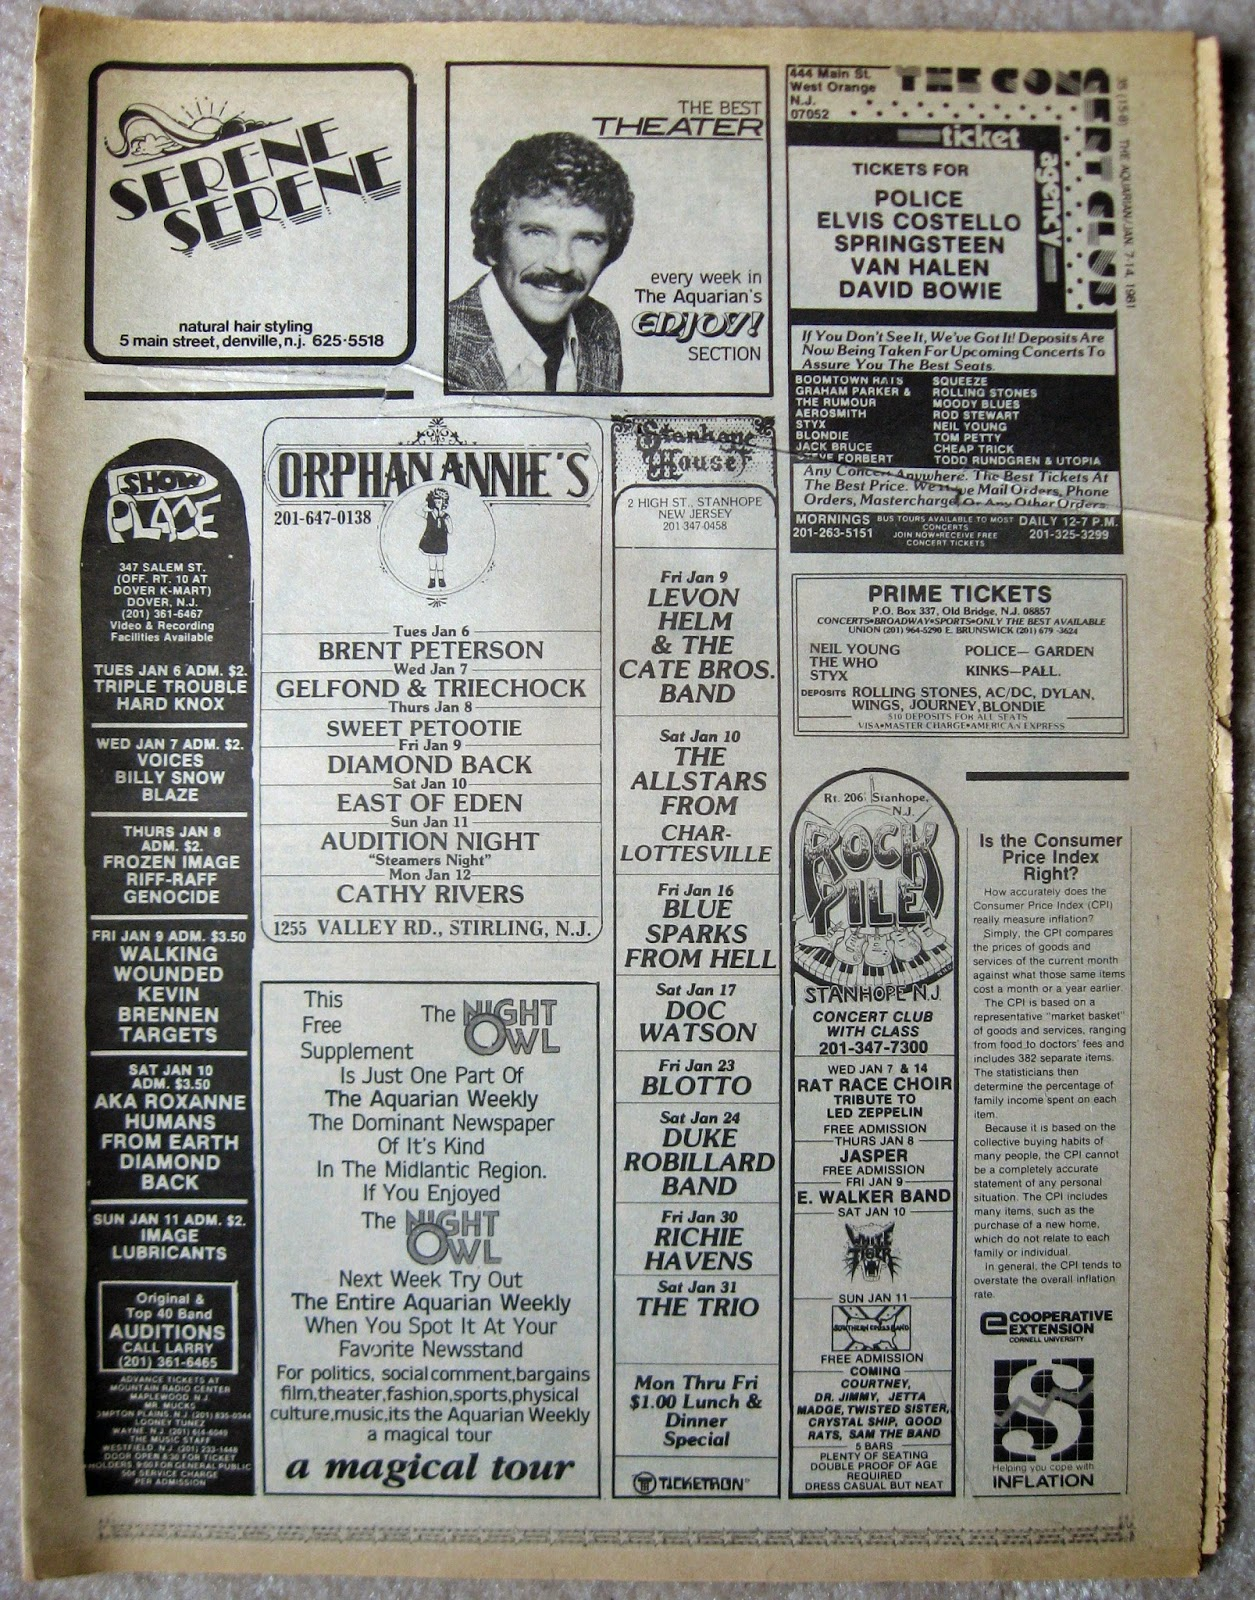 Show Place - Orphan Annie's - Stanhope House - Rock Pile band line ups 1981